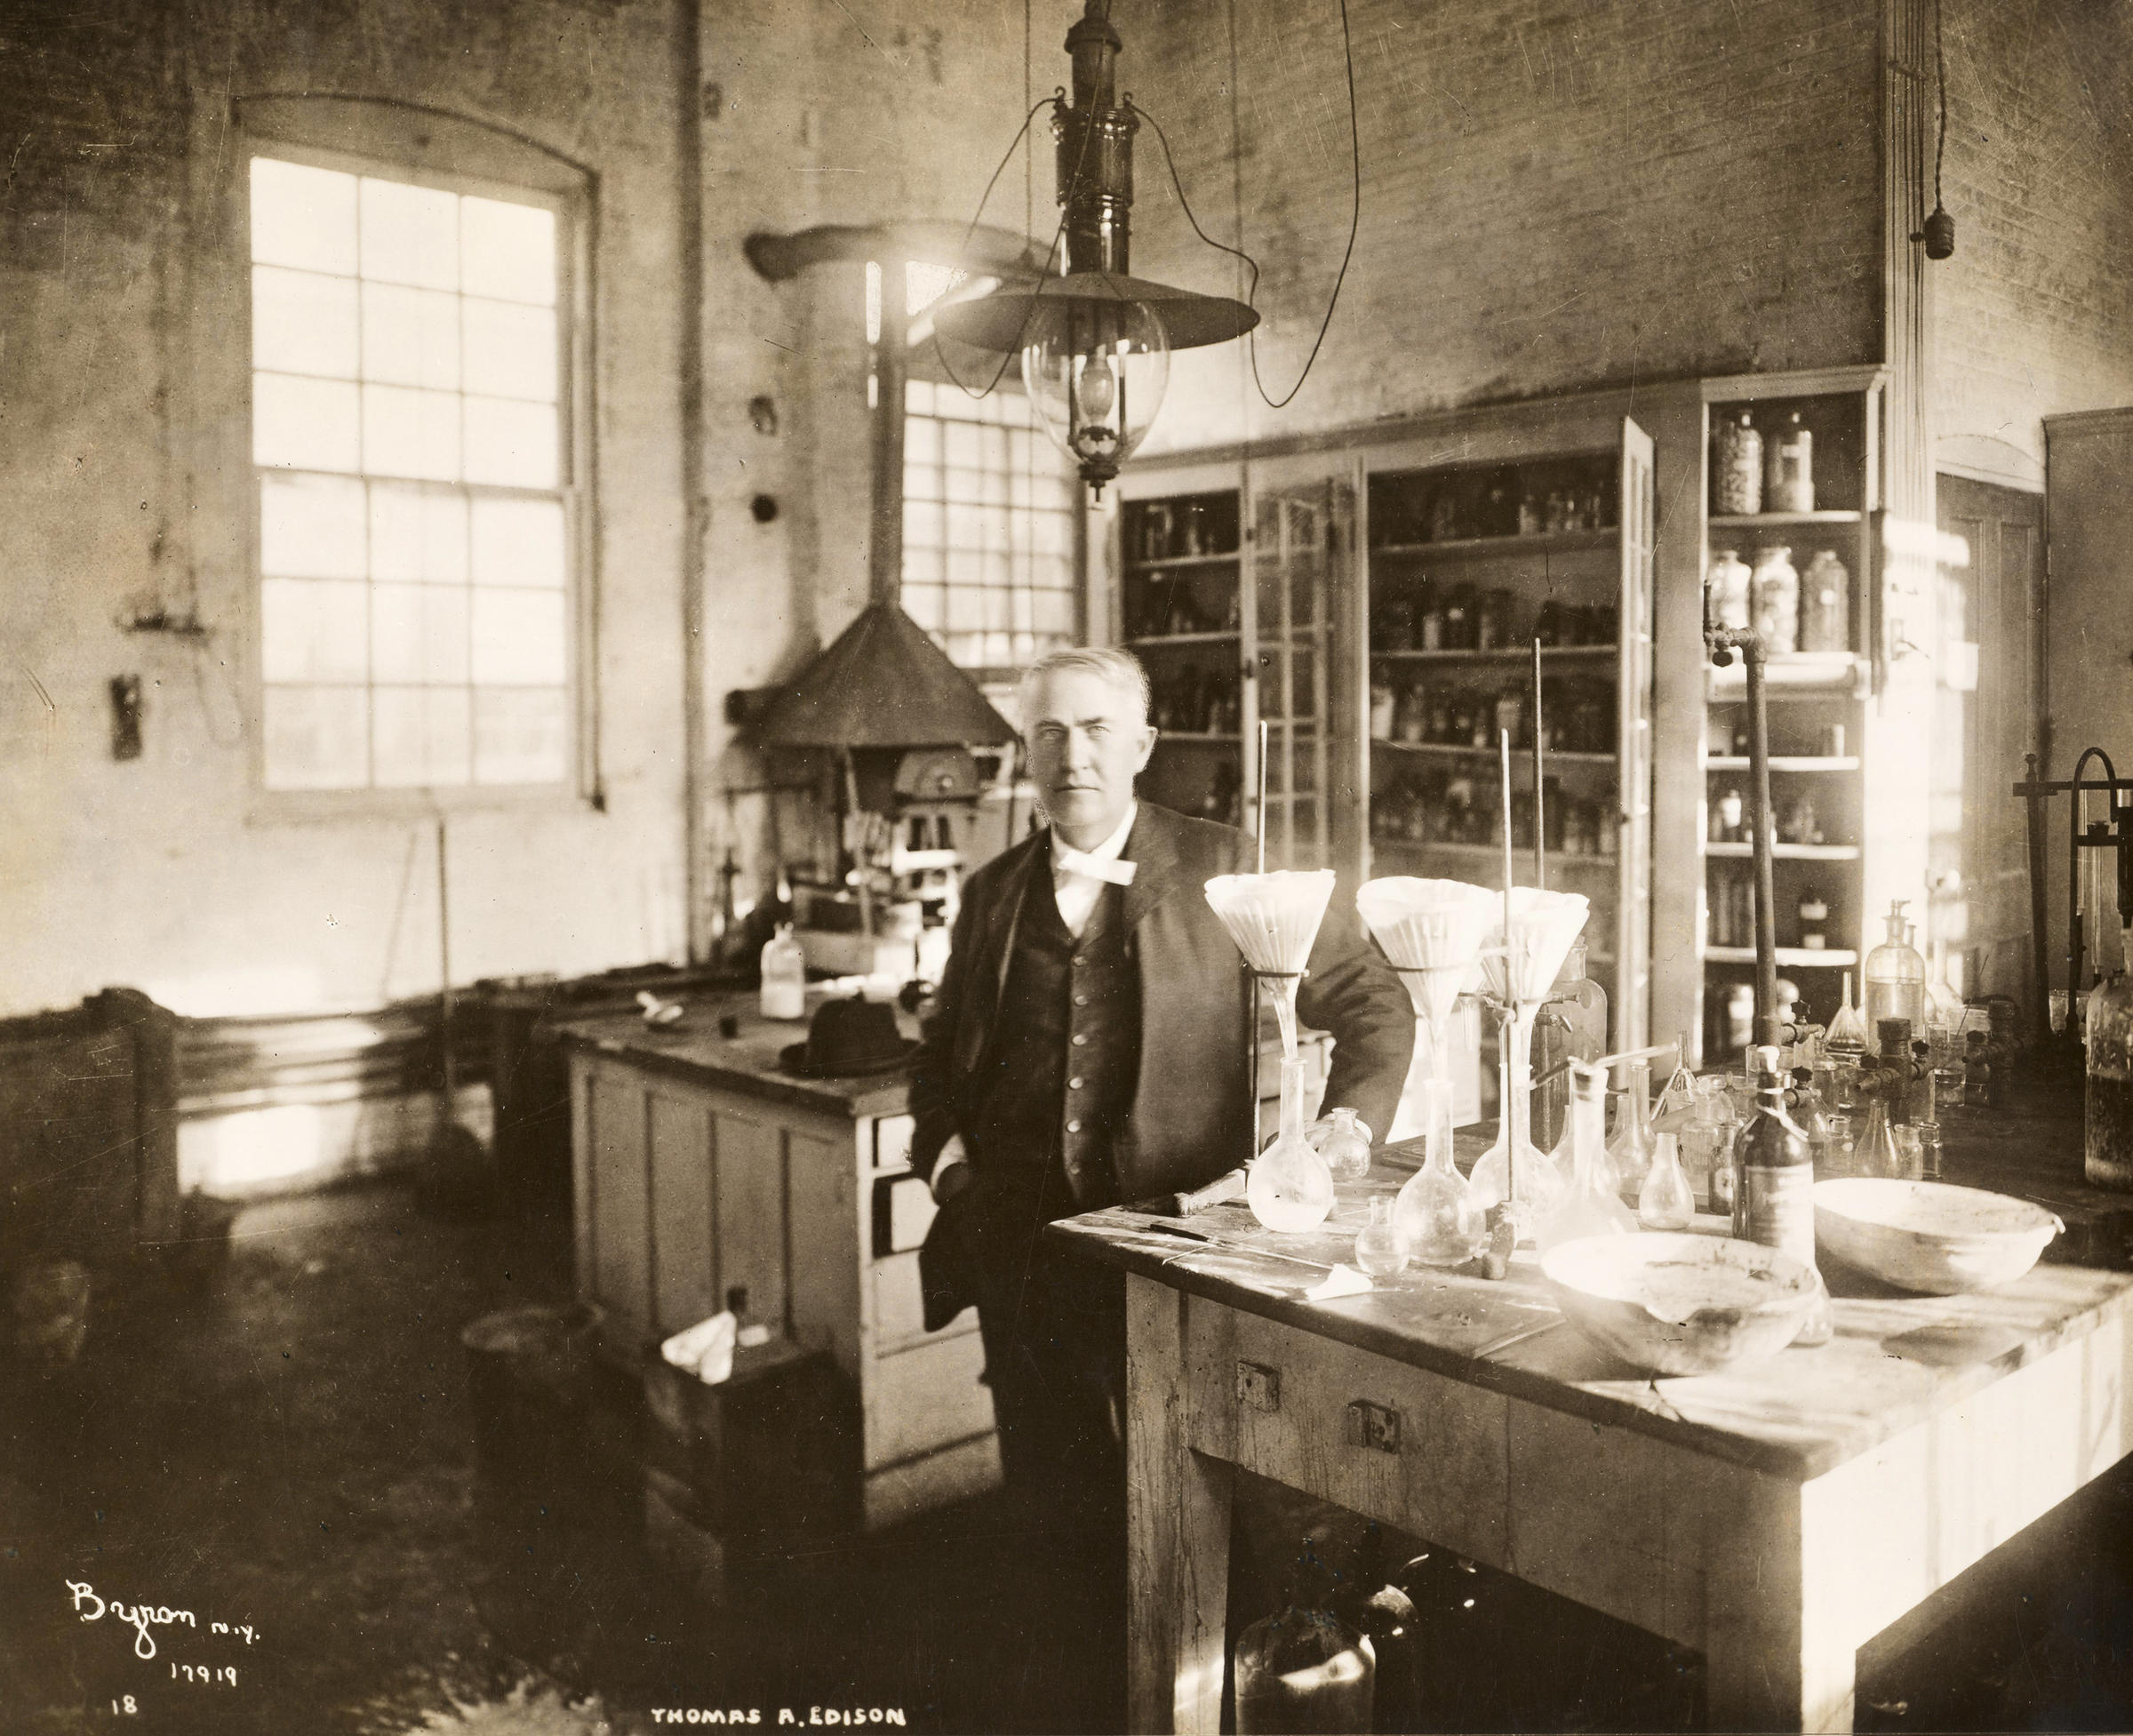 Thomas Edison stands in his chemistry lab in West Orange, New Jersey, in 1904.